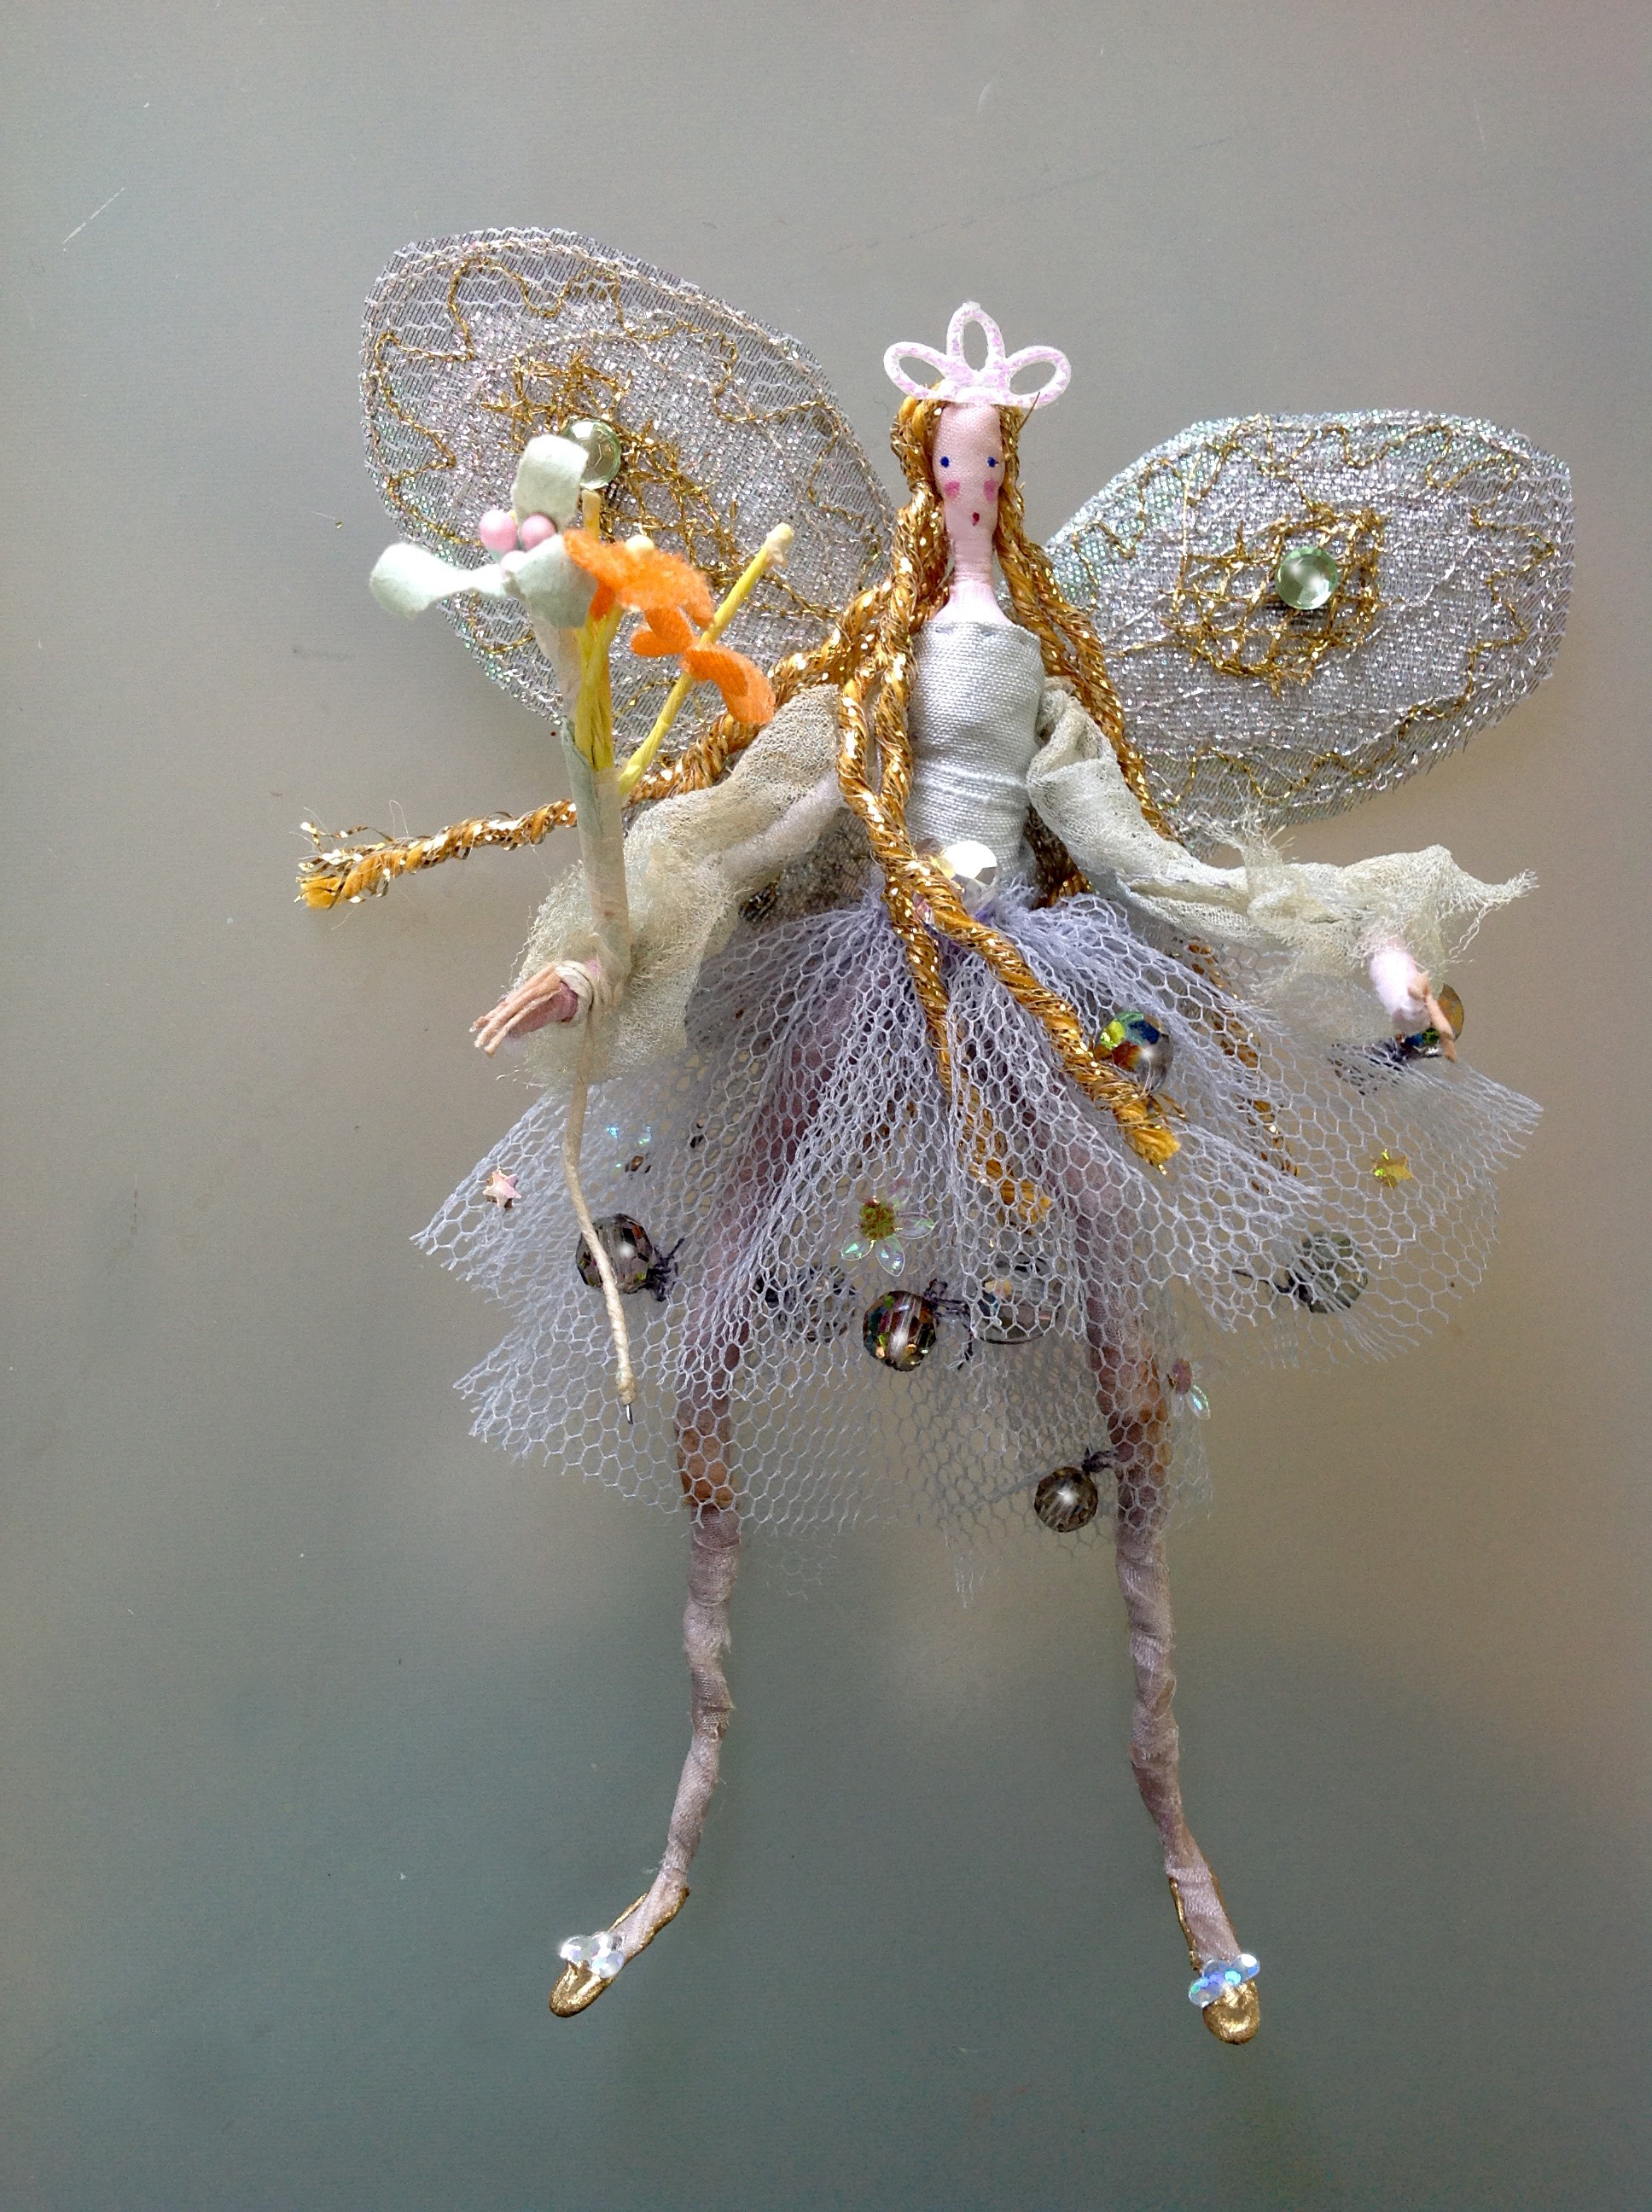 CRYSTAL An 11 cm high fairy wearing a hand dyed chiffon top and stiff netted skirt embellished with crystals and a special heart crystal at her waist. She has stiffly embroidered wings and is carrying a fabric and paper flower wand. She comes in an organza bag with dried petals. £28 plus £2 p&p.